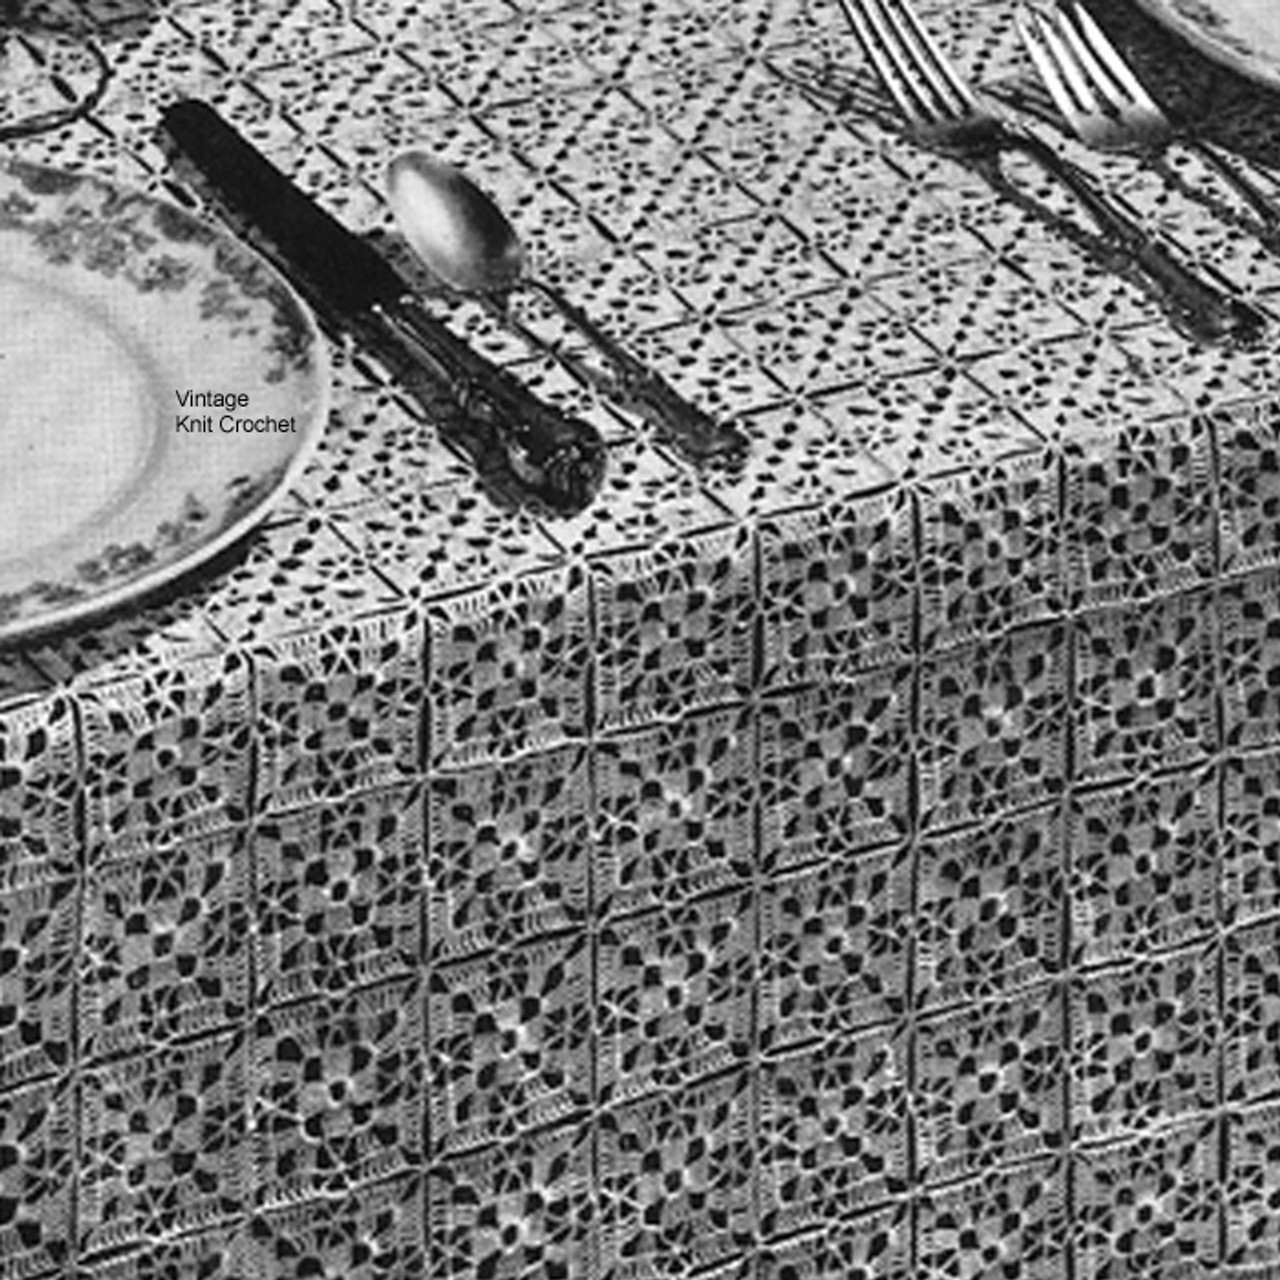 Vintage 1940's crochet tablecloth pattern is made up of 2 inch squares joined to form a cloth that measure 66 x 88 inches.  Coats & Clark's No 7744